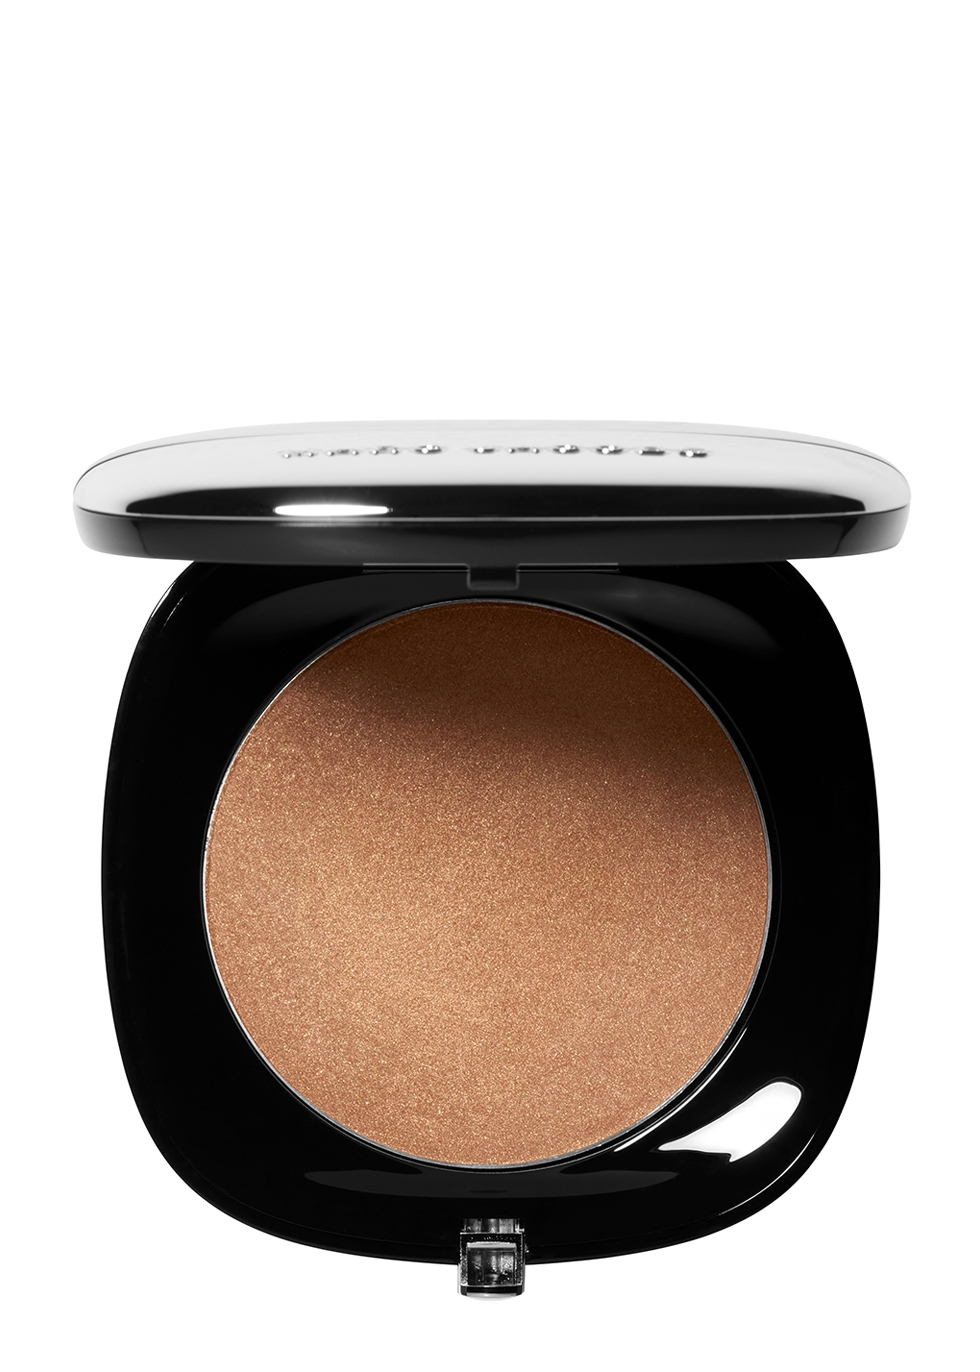 Accomplice Instant Blurring Beauty Powder with Brush